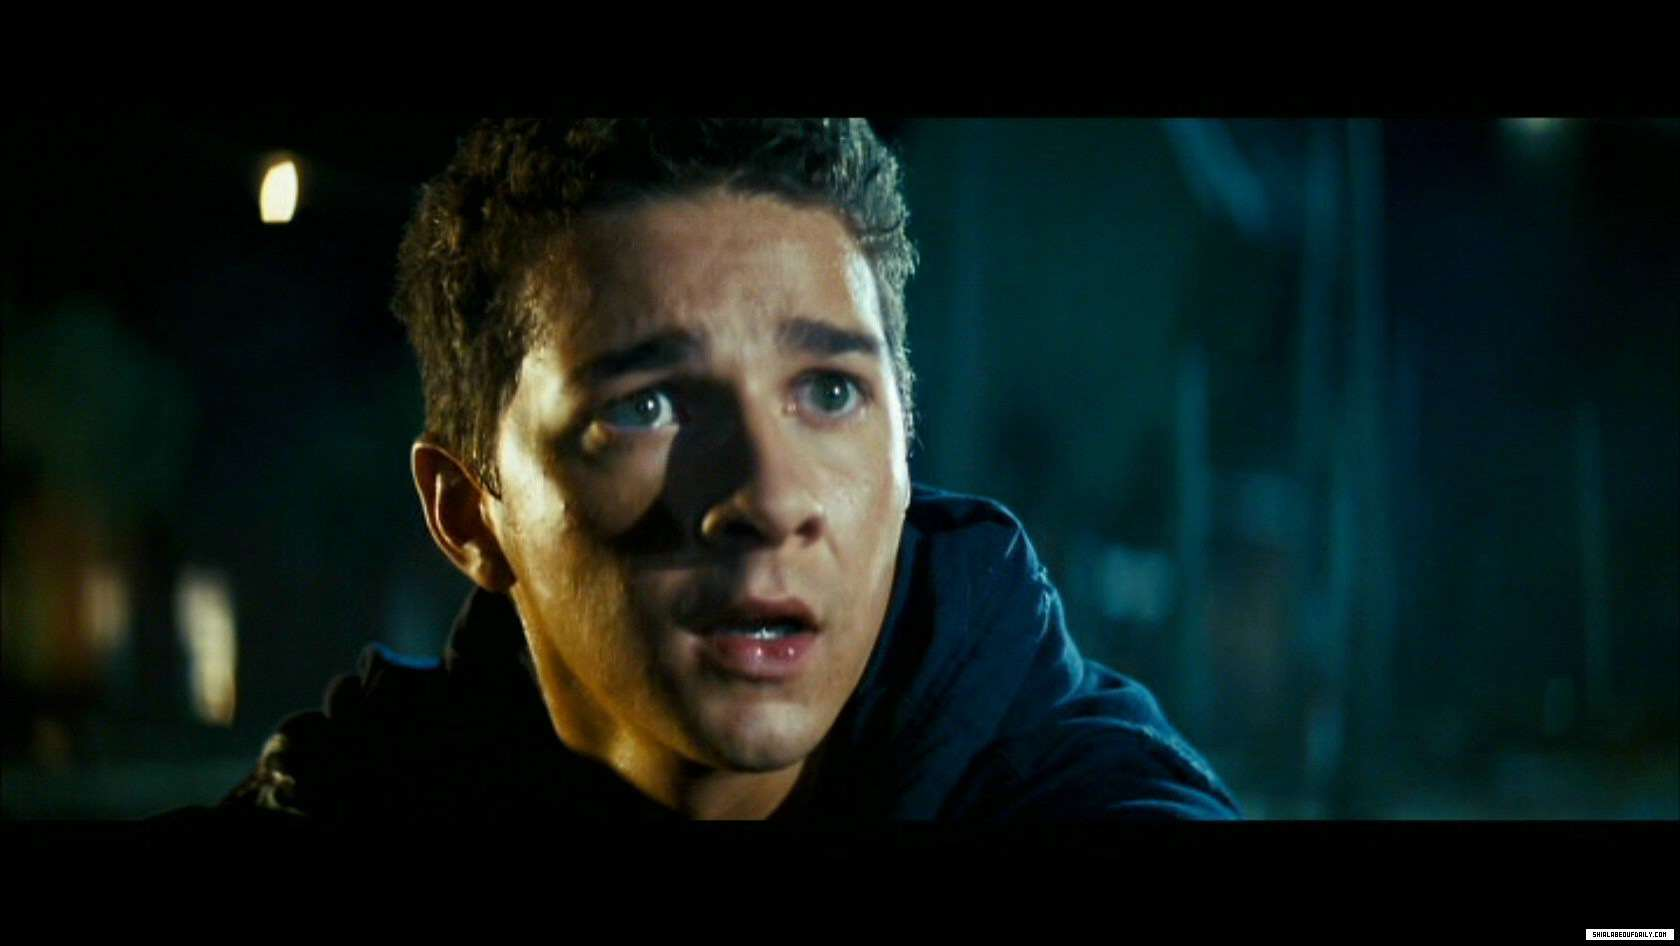 Shia LaBeouf Has Body Full Of Tattoos And Is Unrecognisable In New Role Shia in Transformers shia labeouf 1670437 1680 946